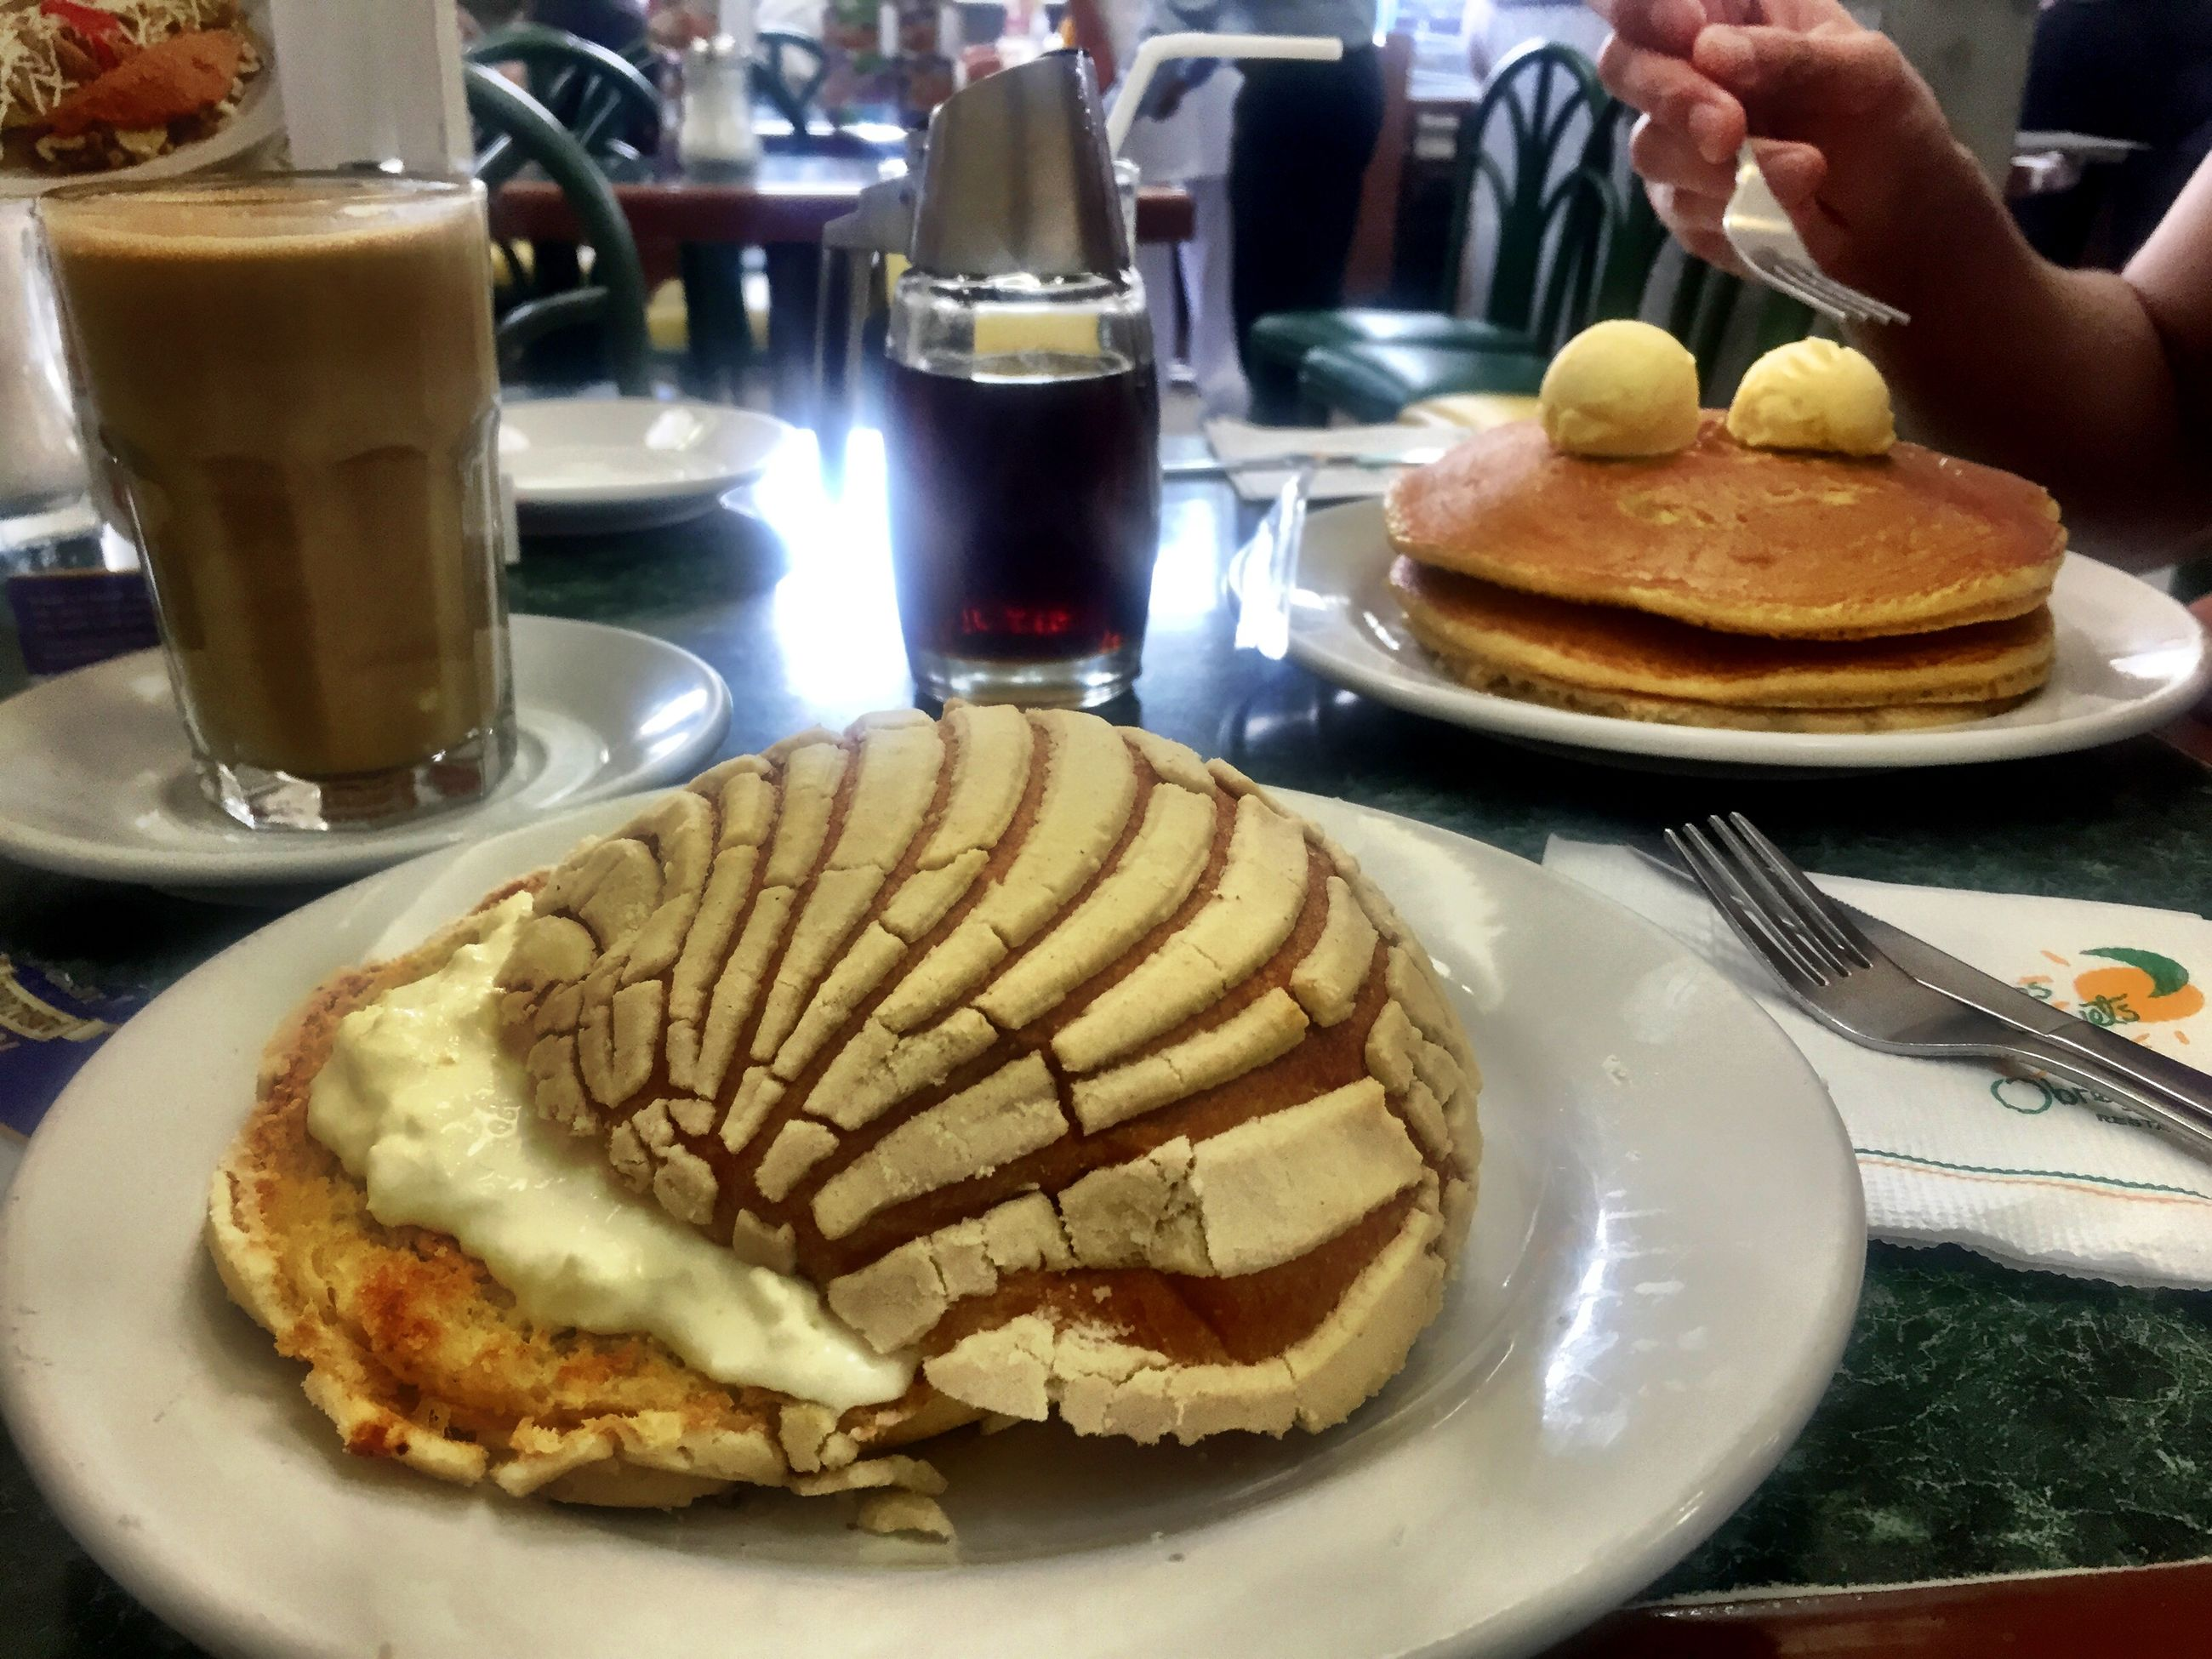 food and drink, food, freshness, indoors, table, plate, ready-to-eat, still life, drink, sweet food, indulgence, healthy eating, refreshment, breakfast, dessert, bread, serving size, coffee - drink, close-up